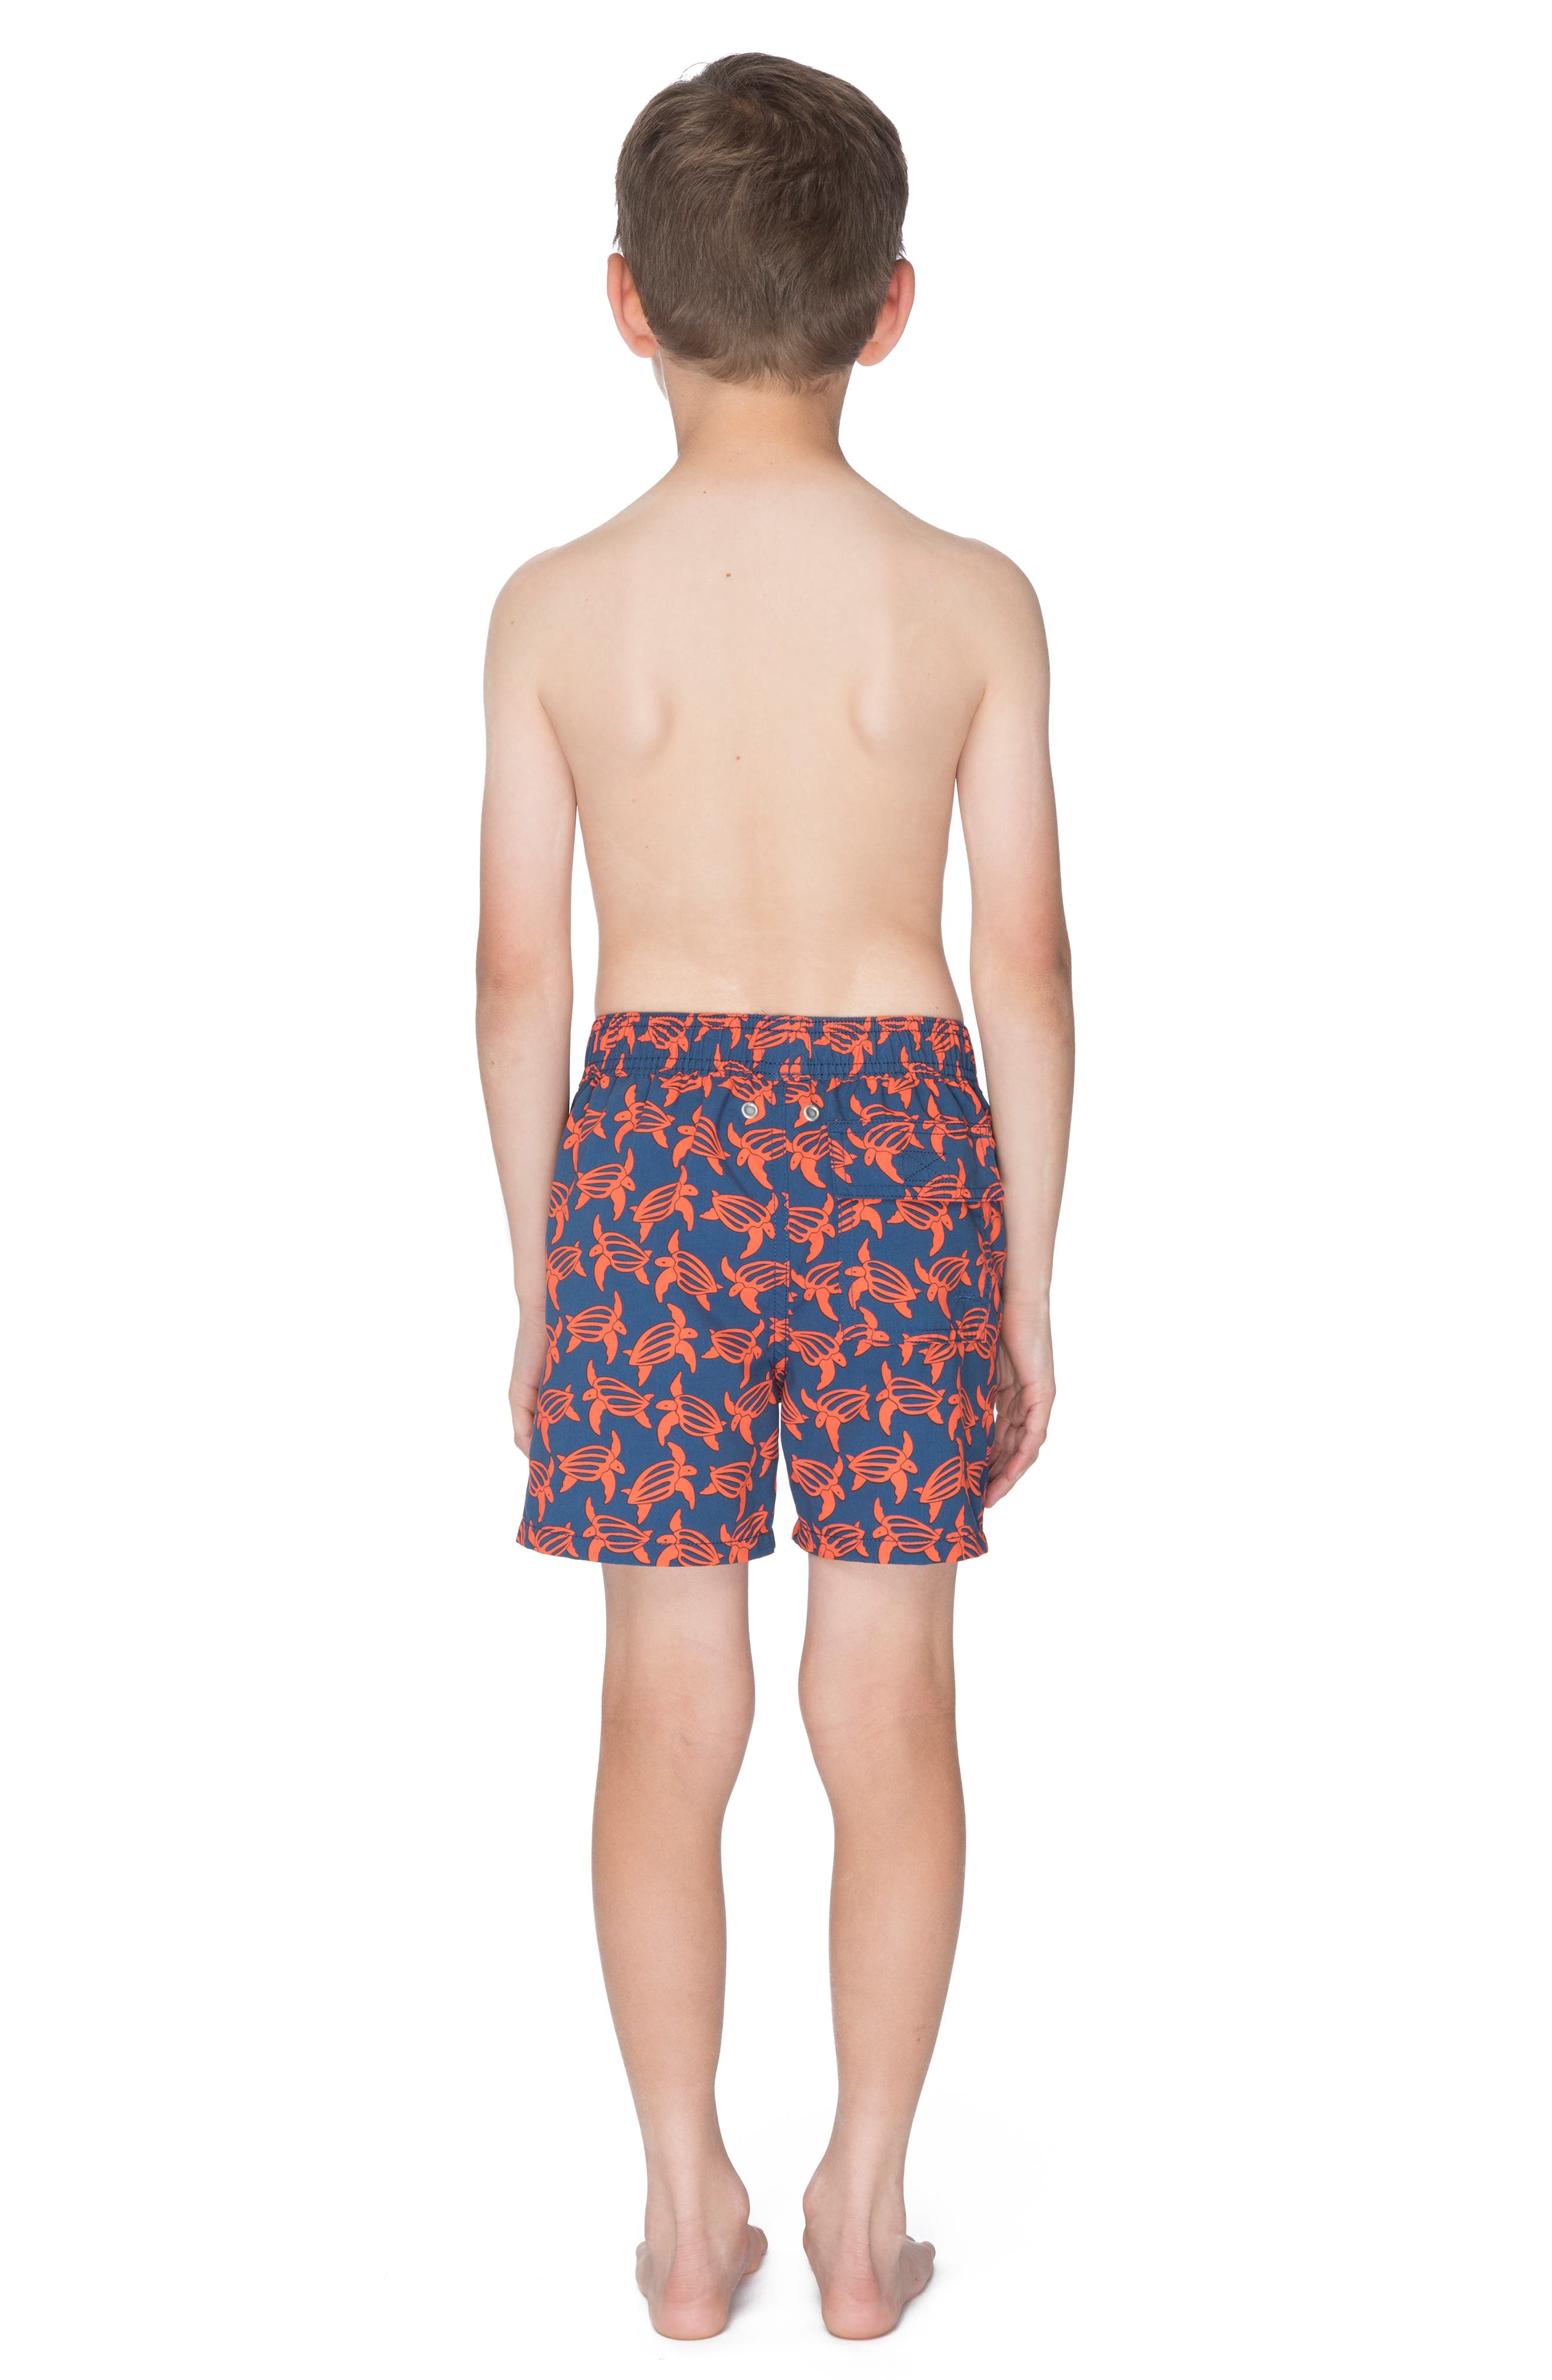 Turtle Swim Trunks,                             Alternate thumbnail 3, color,                             NAVY/ ORANGE